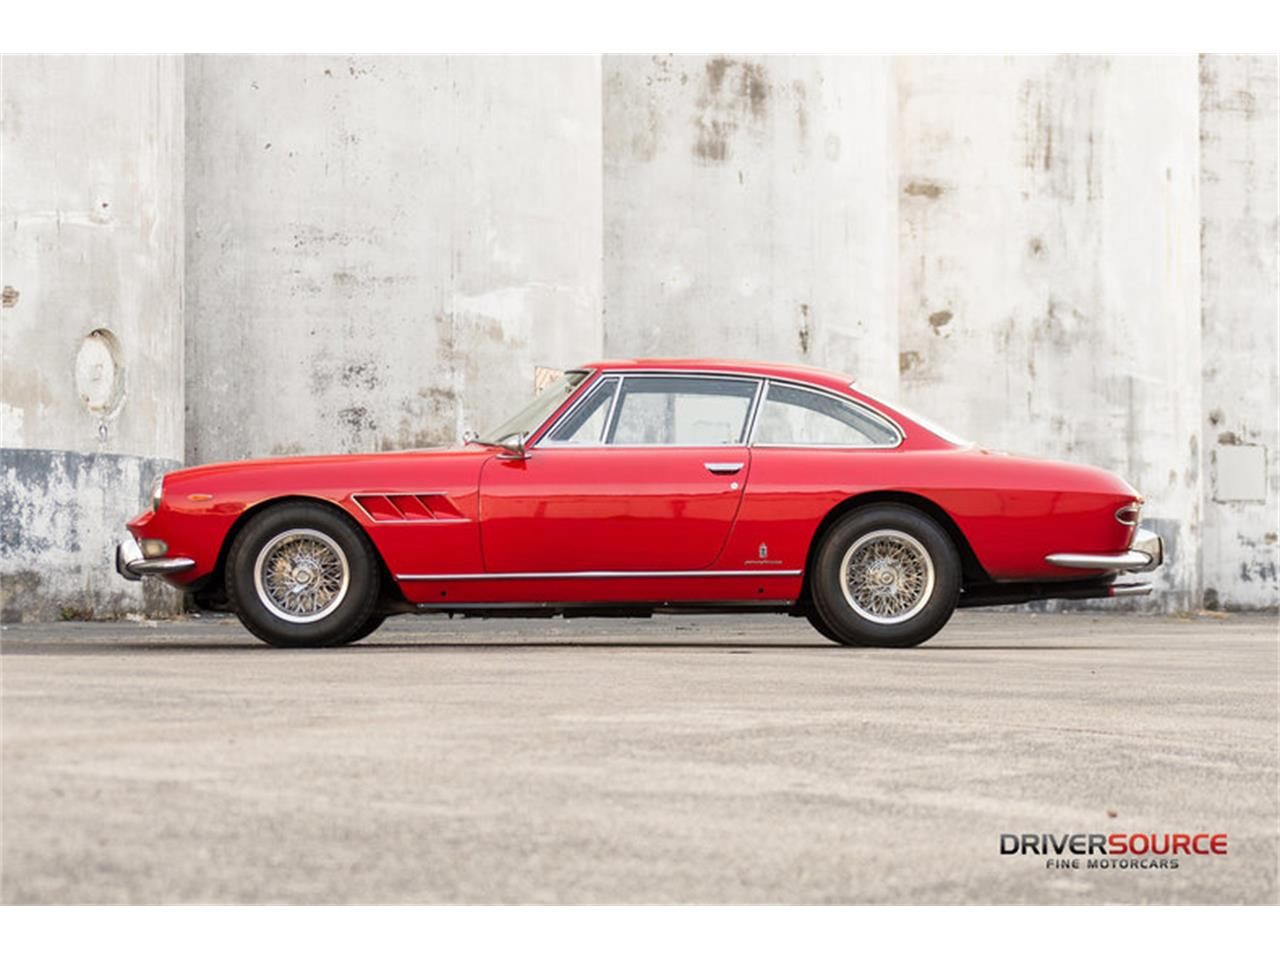 Large Picture of '66 330 GT located in Texas - $292,500.00 Offered by Driversource - MH2U